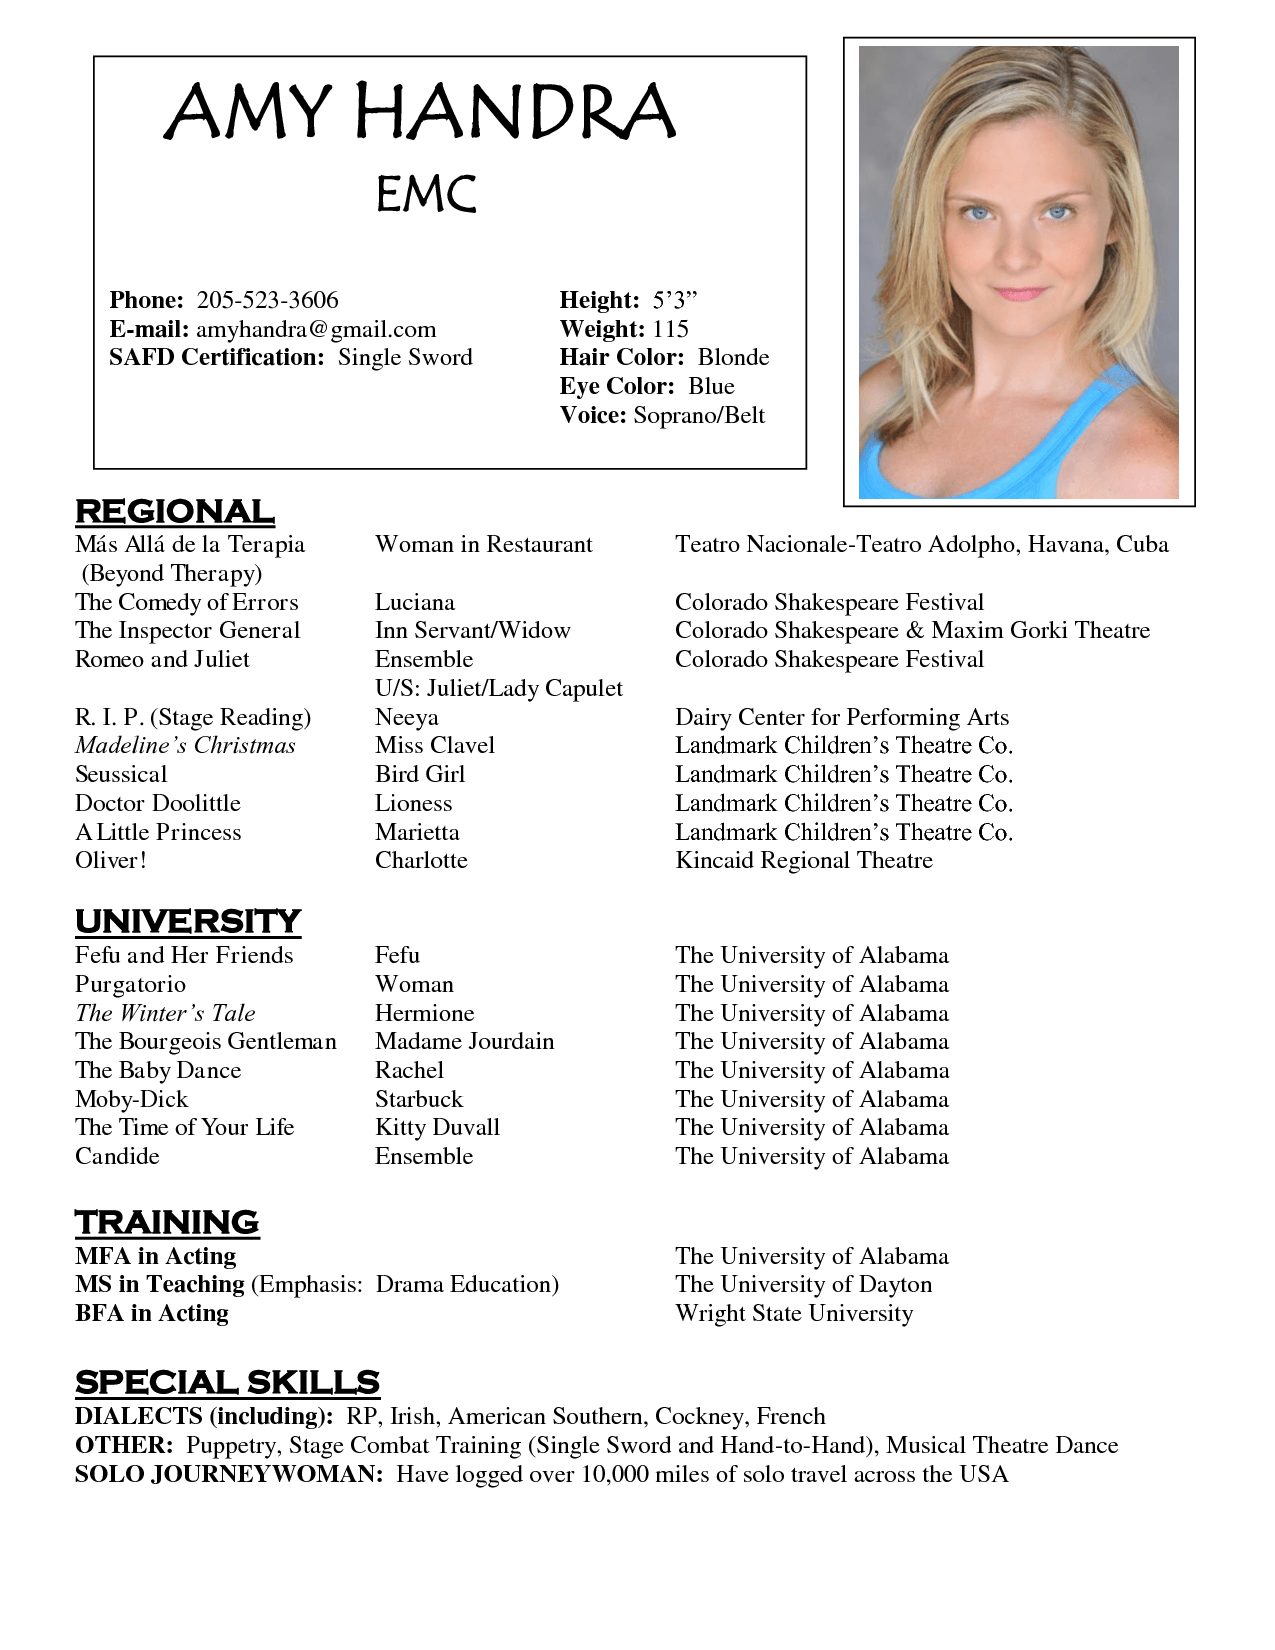 actor acting resume beginner. free acting resume samples and ...